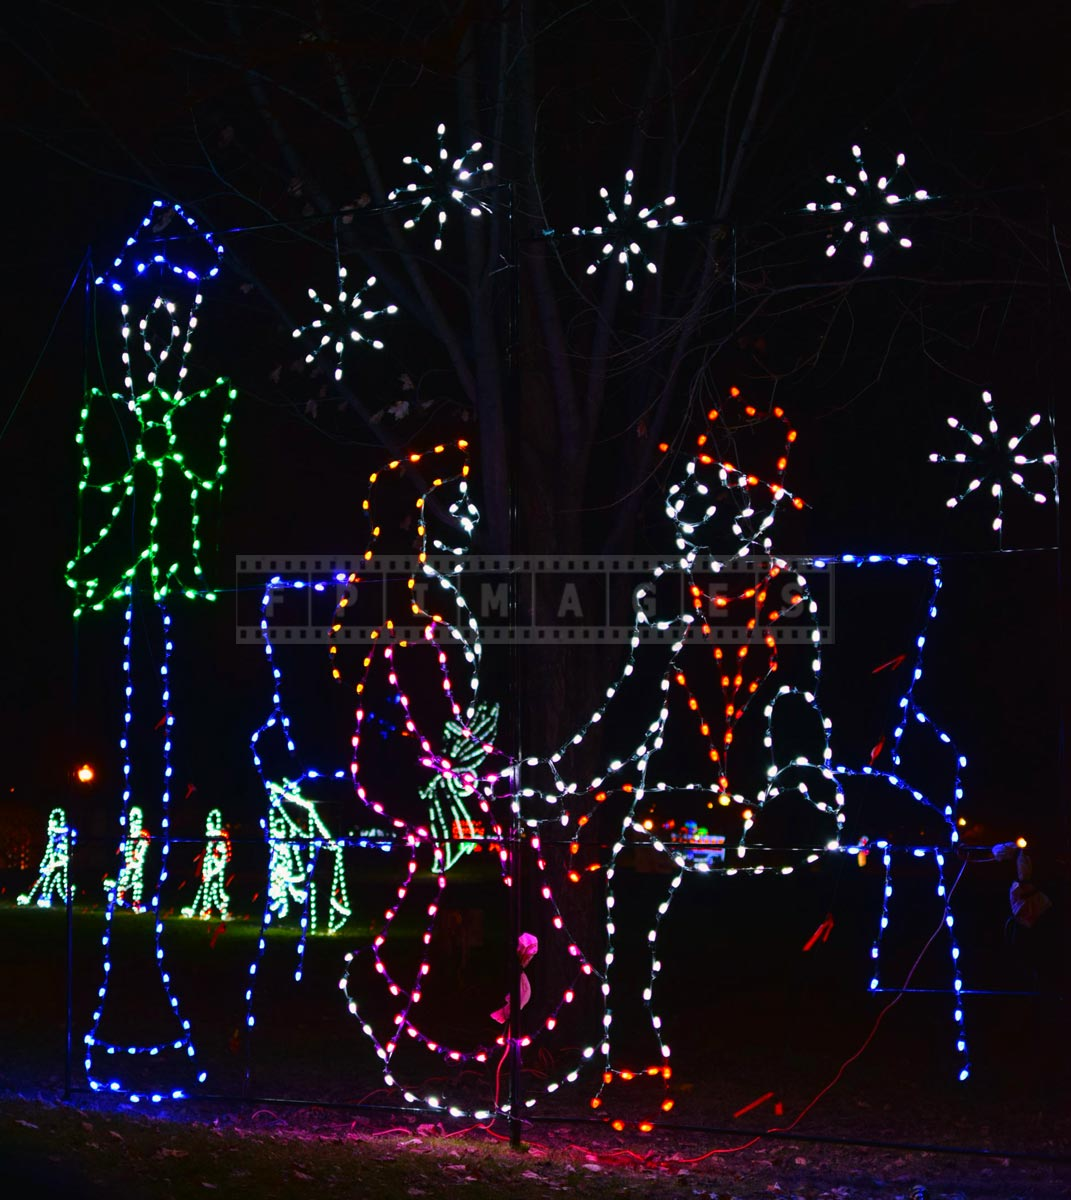 Romantic scene with a couple and snowflakes - holiday lights